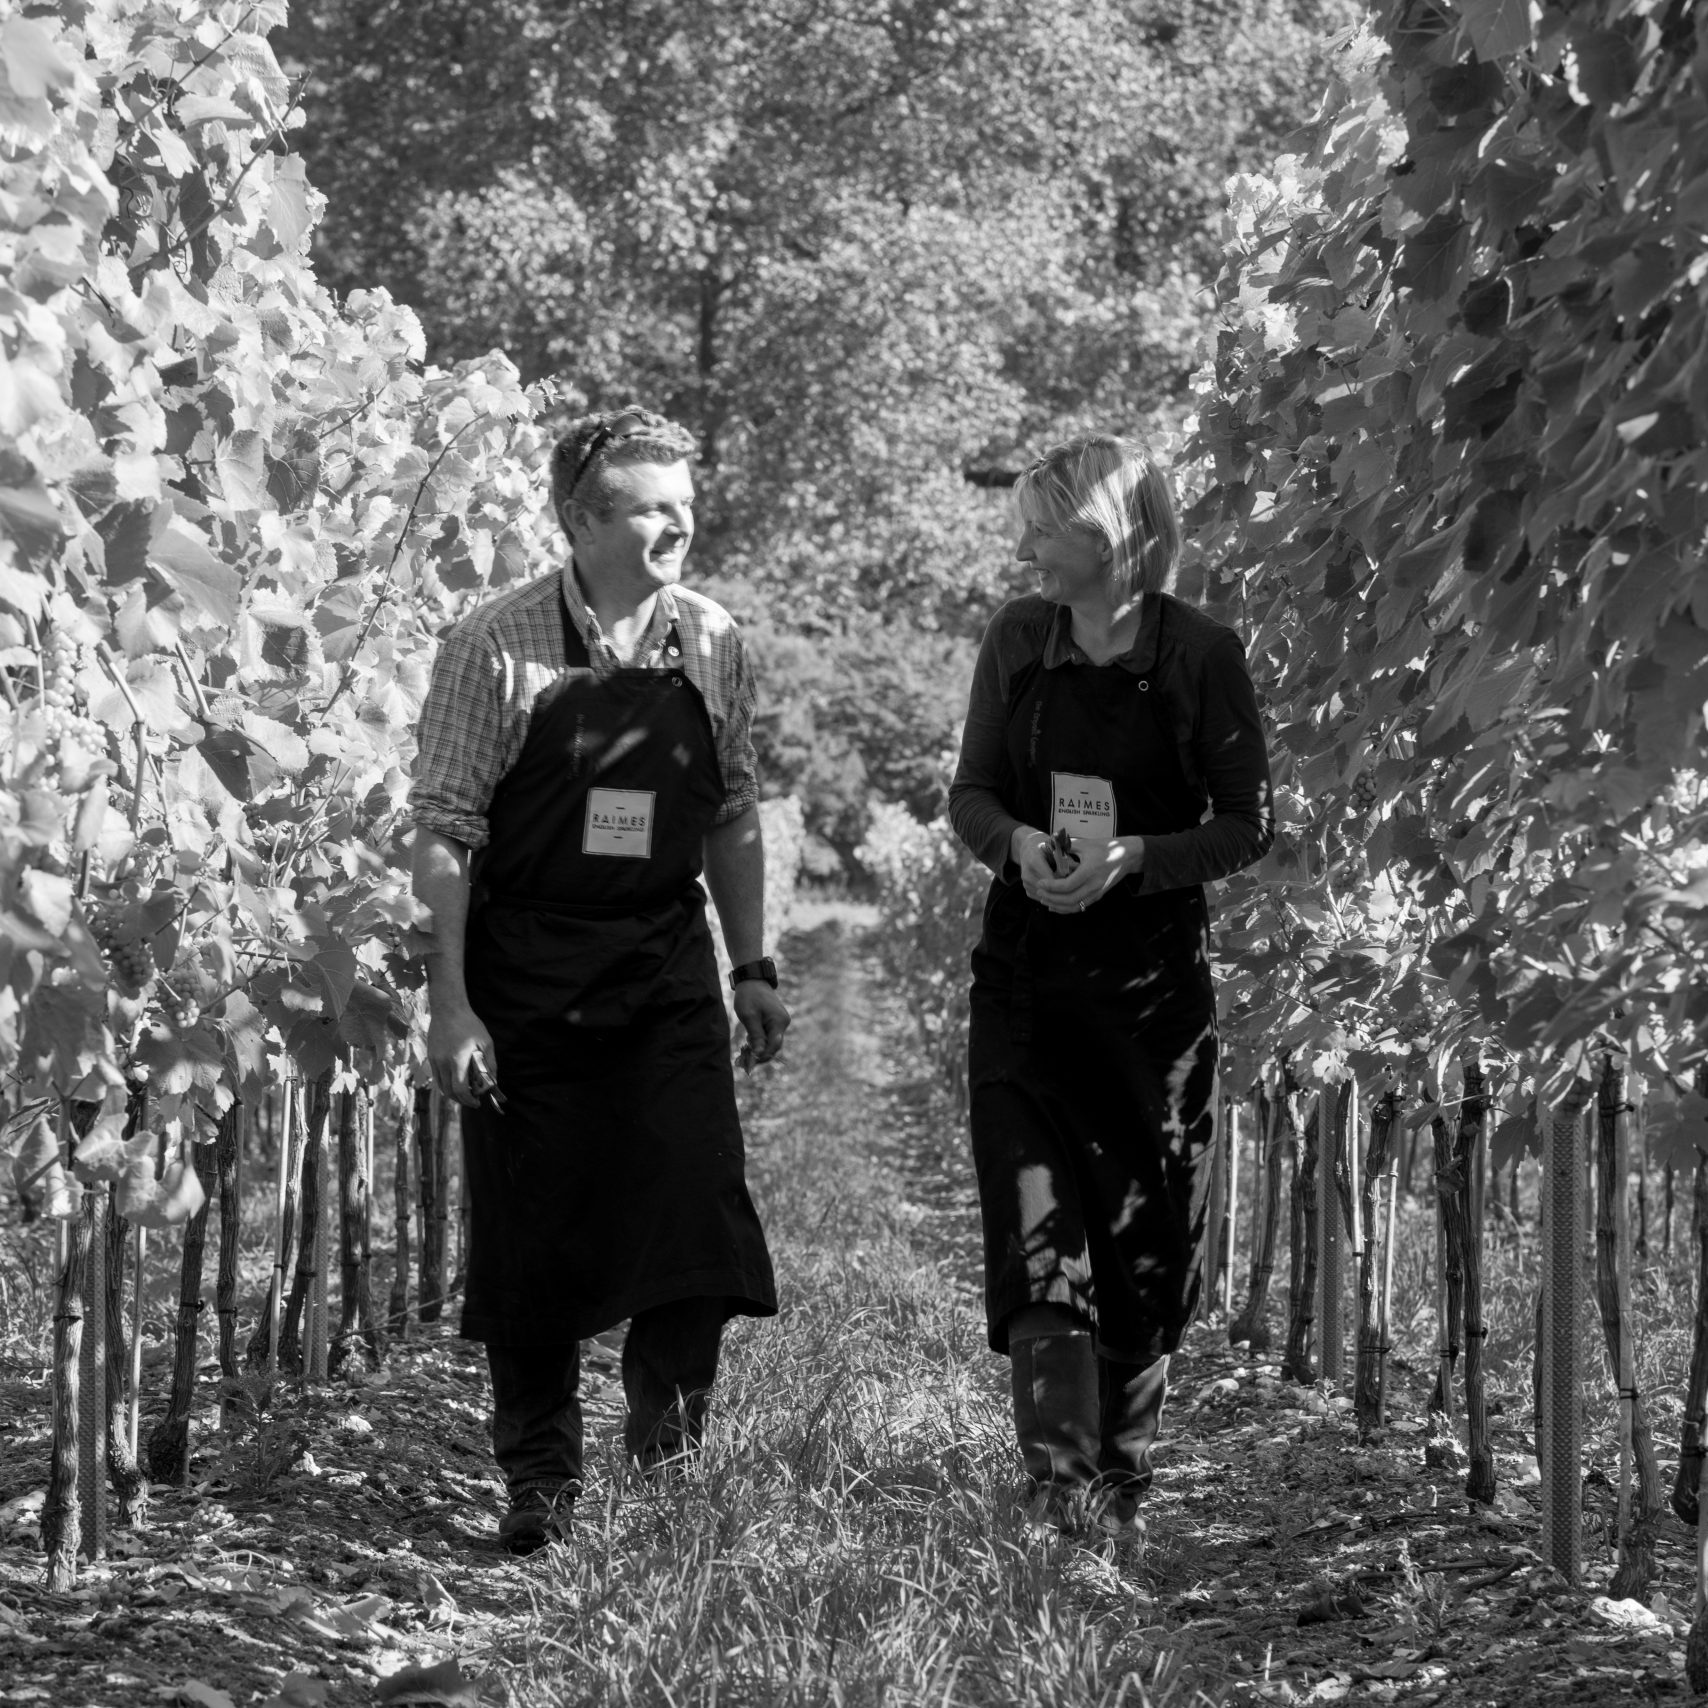 Georgia - RAIMES English wine producers are a mixture of family & world class award-winning specialists. Visit the website to find out more & to make a purchase.